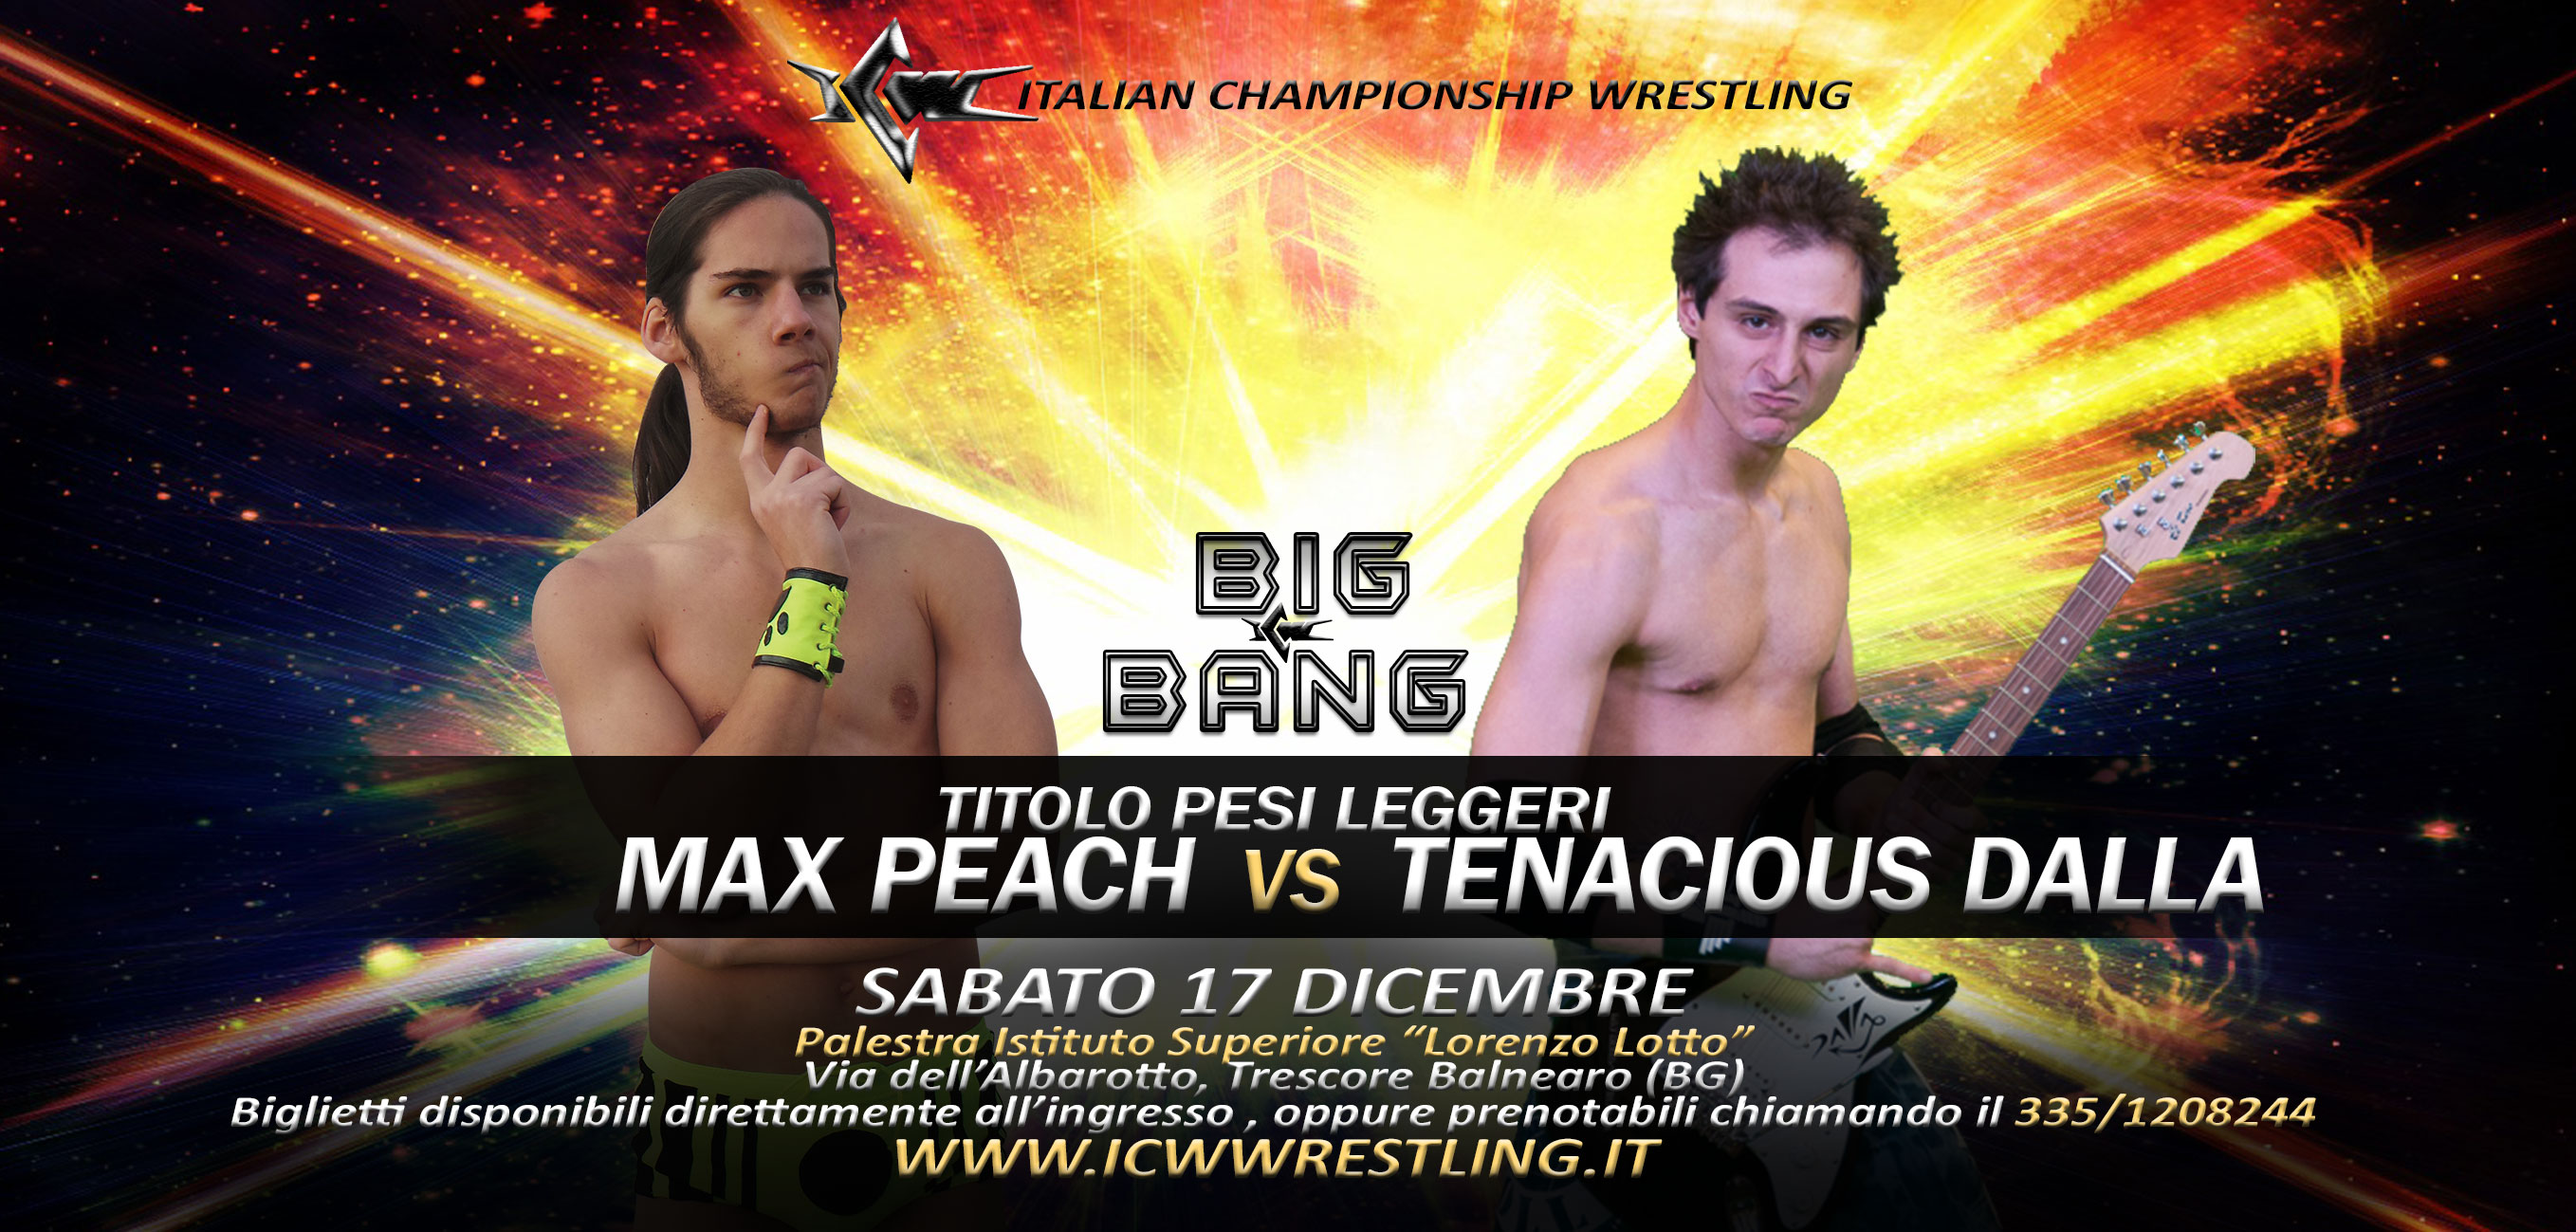 [VIDEO] Finalmente 1 vs 1: Tenacious Dalla sfida Max Peach a ICW Big Bang!